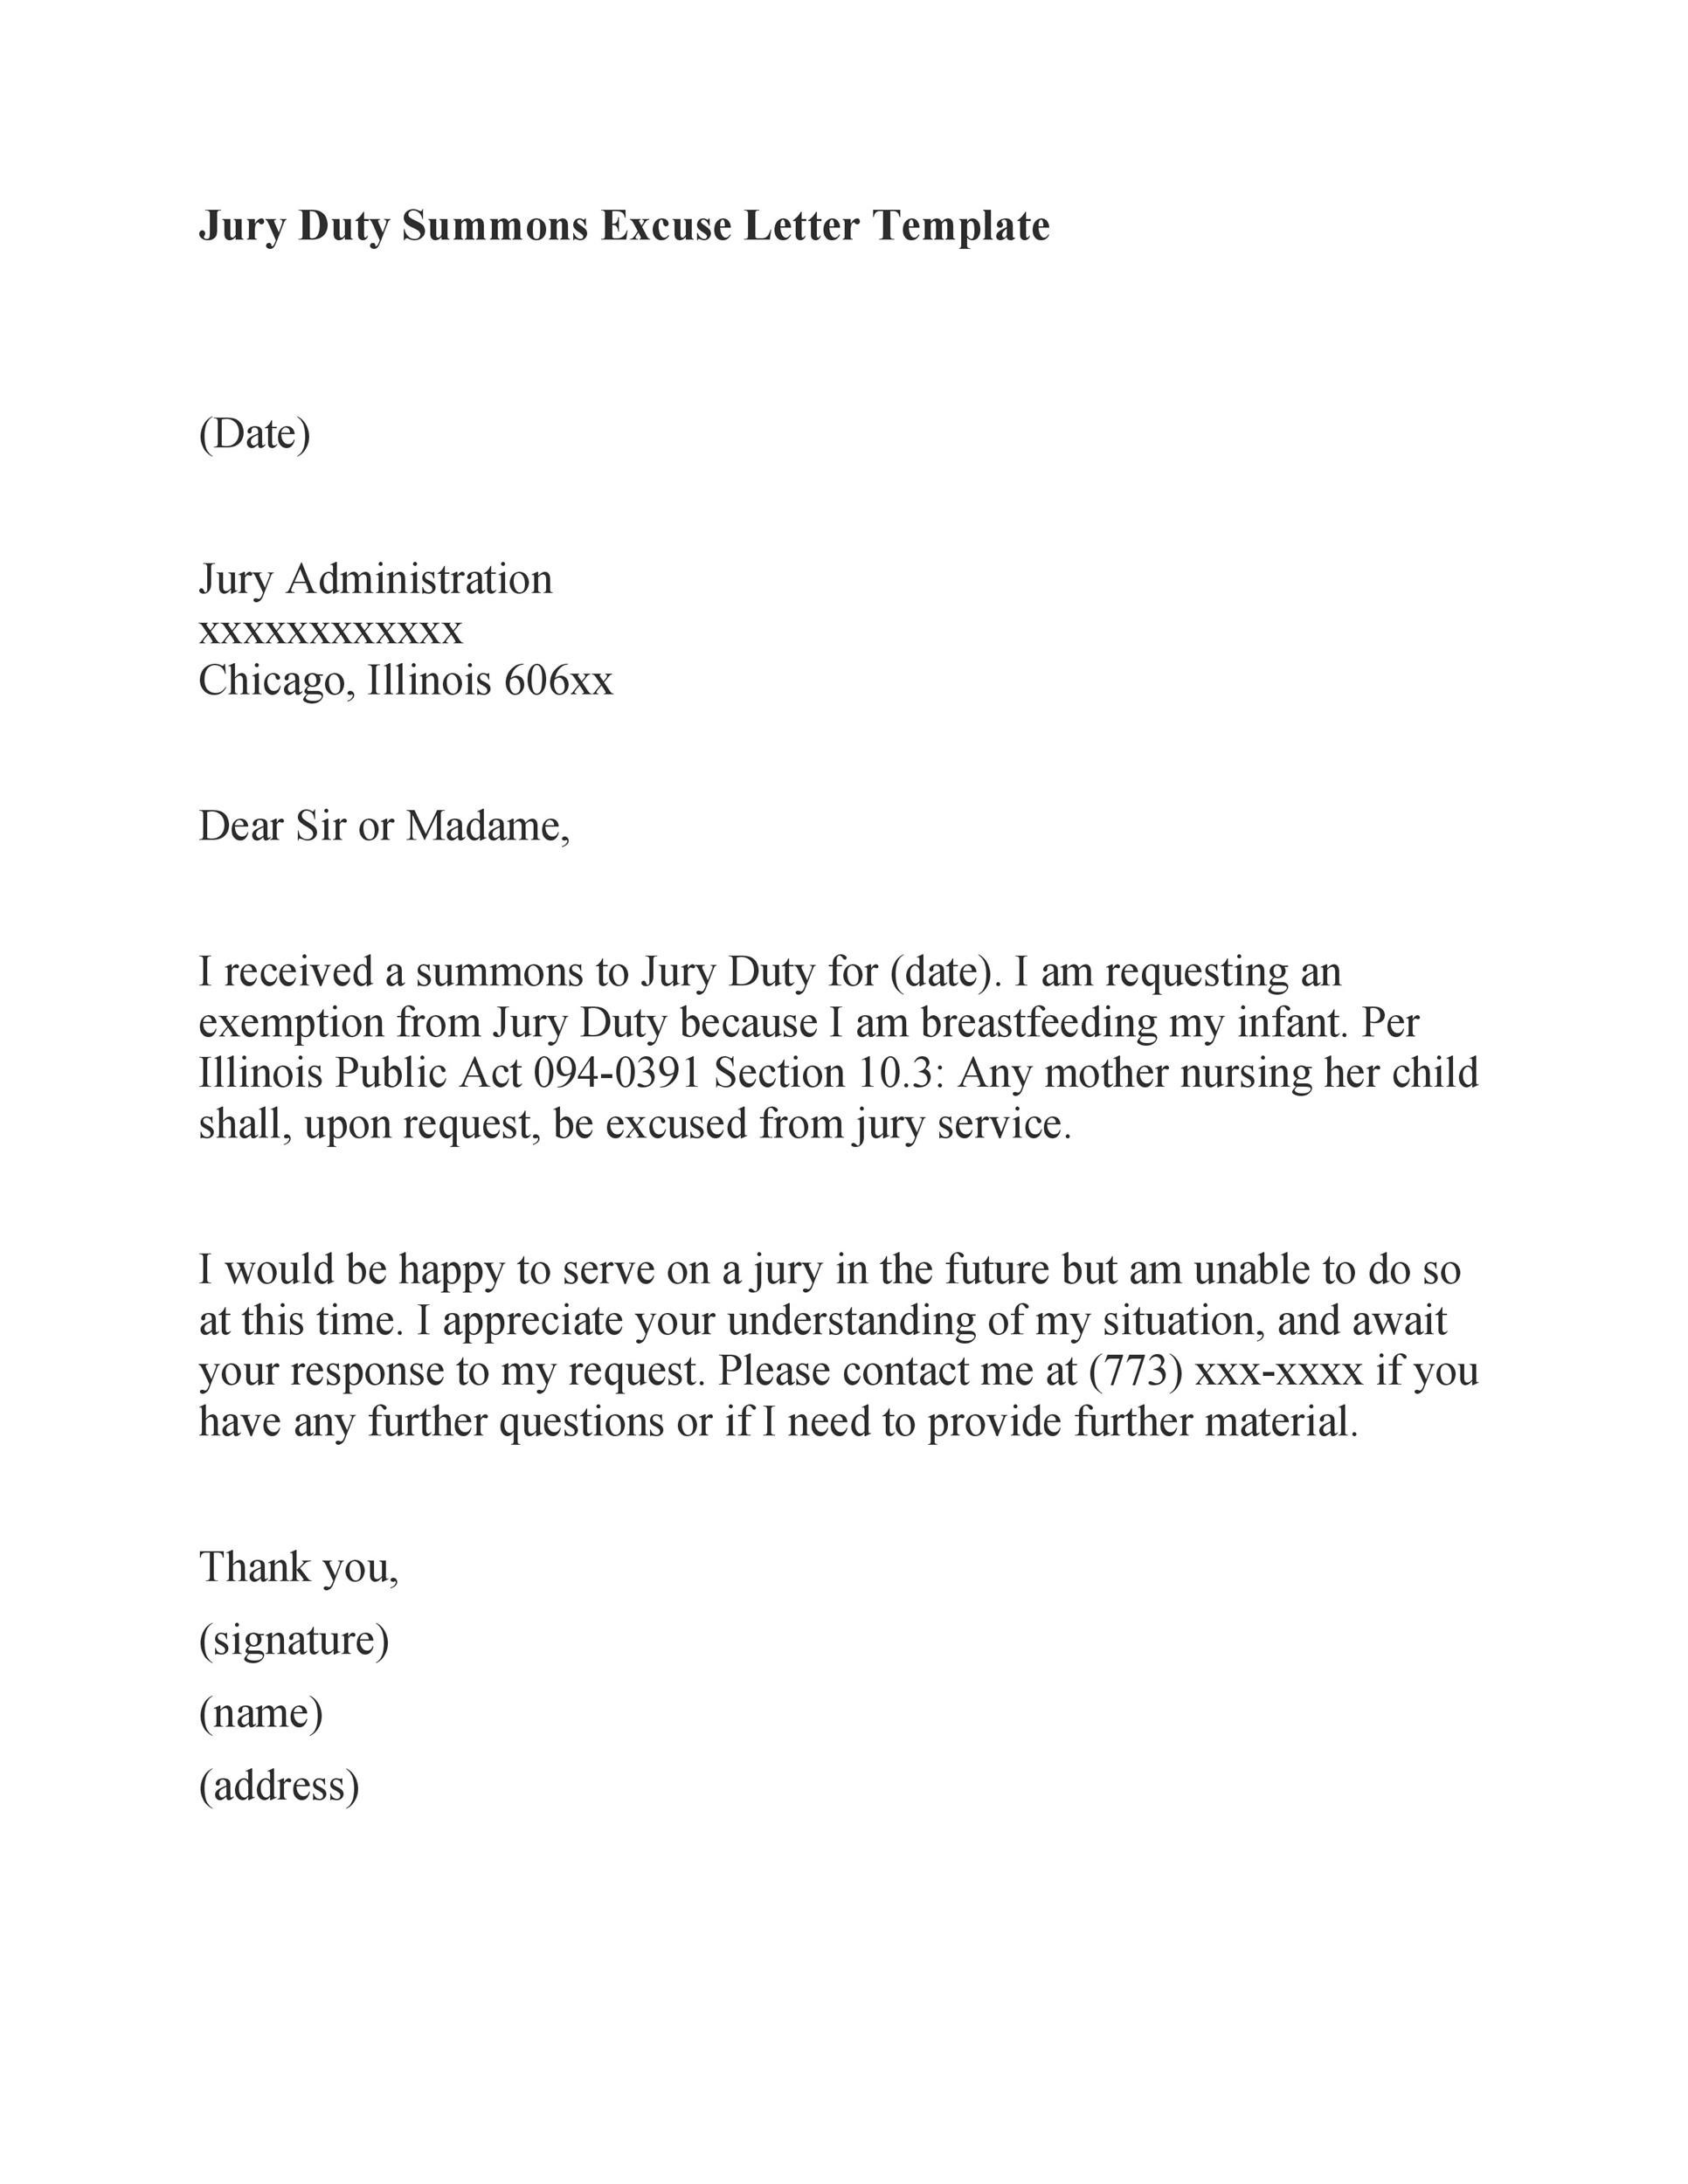 Free jury duty excuse letter template 03